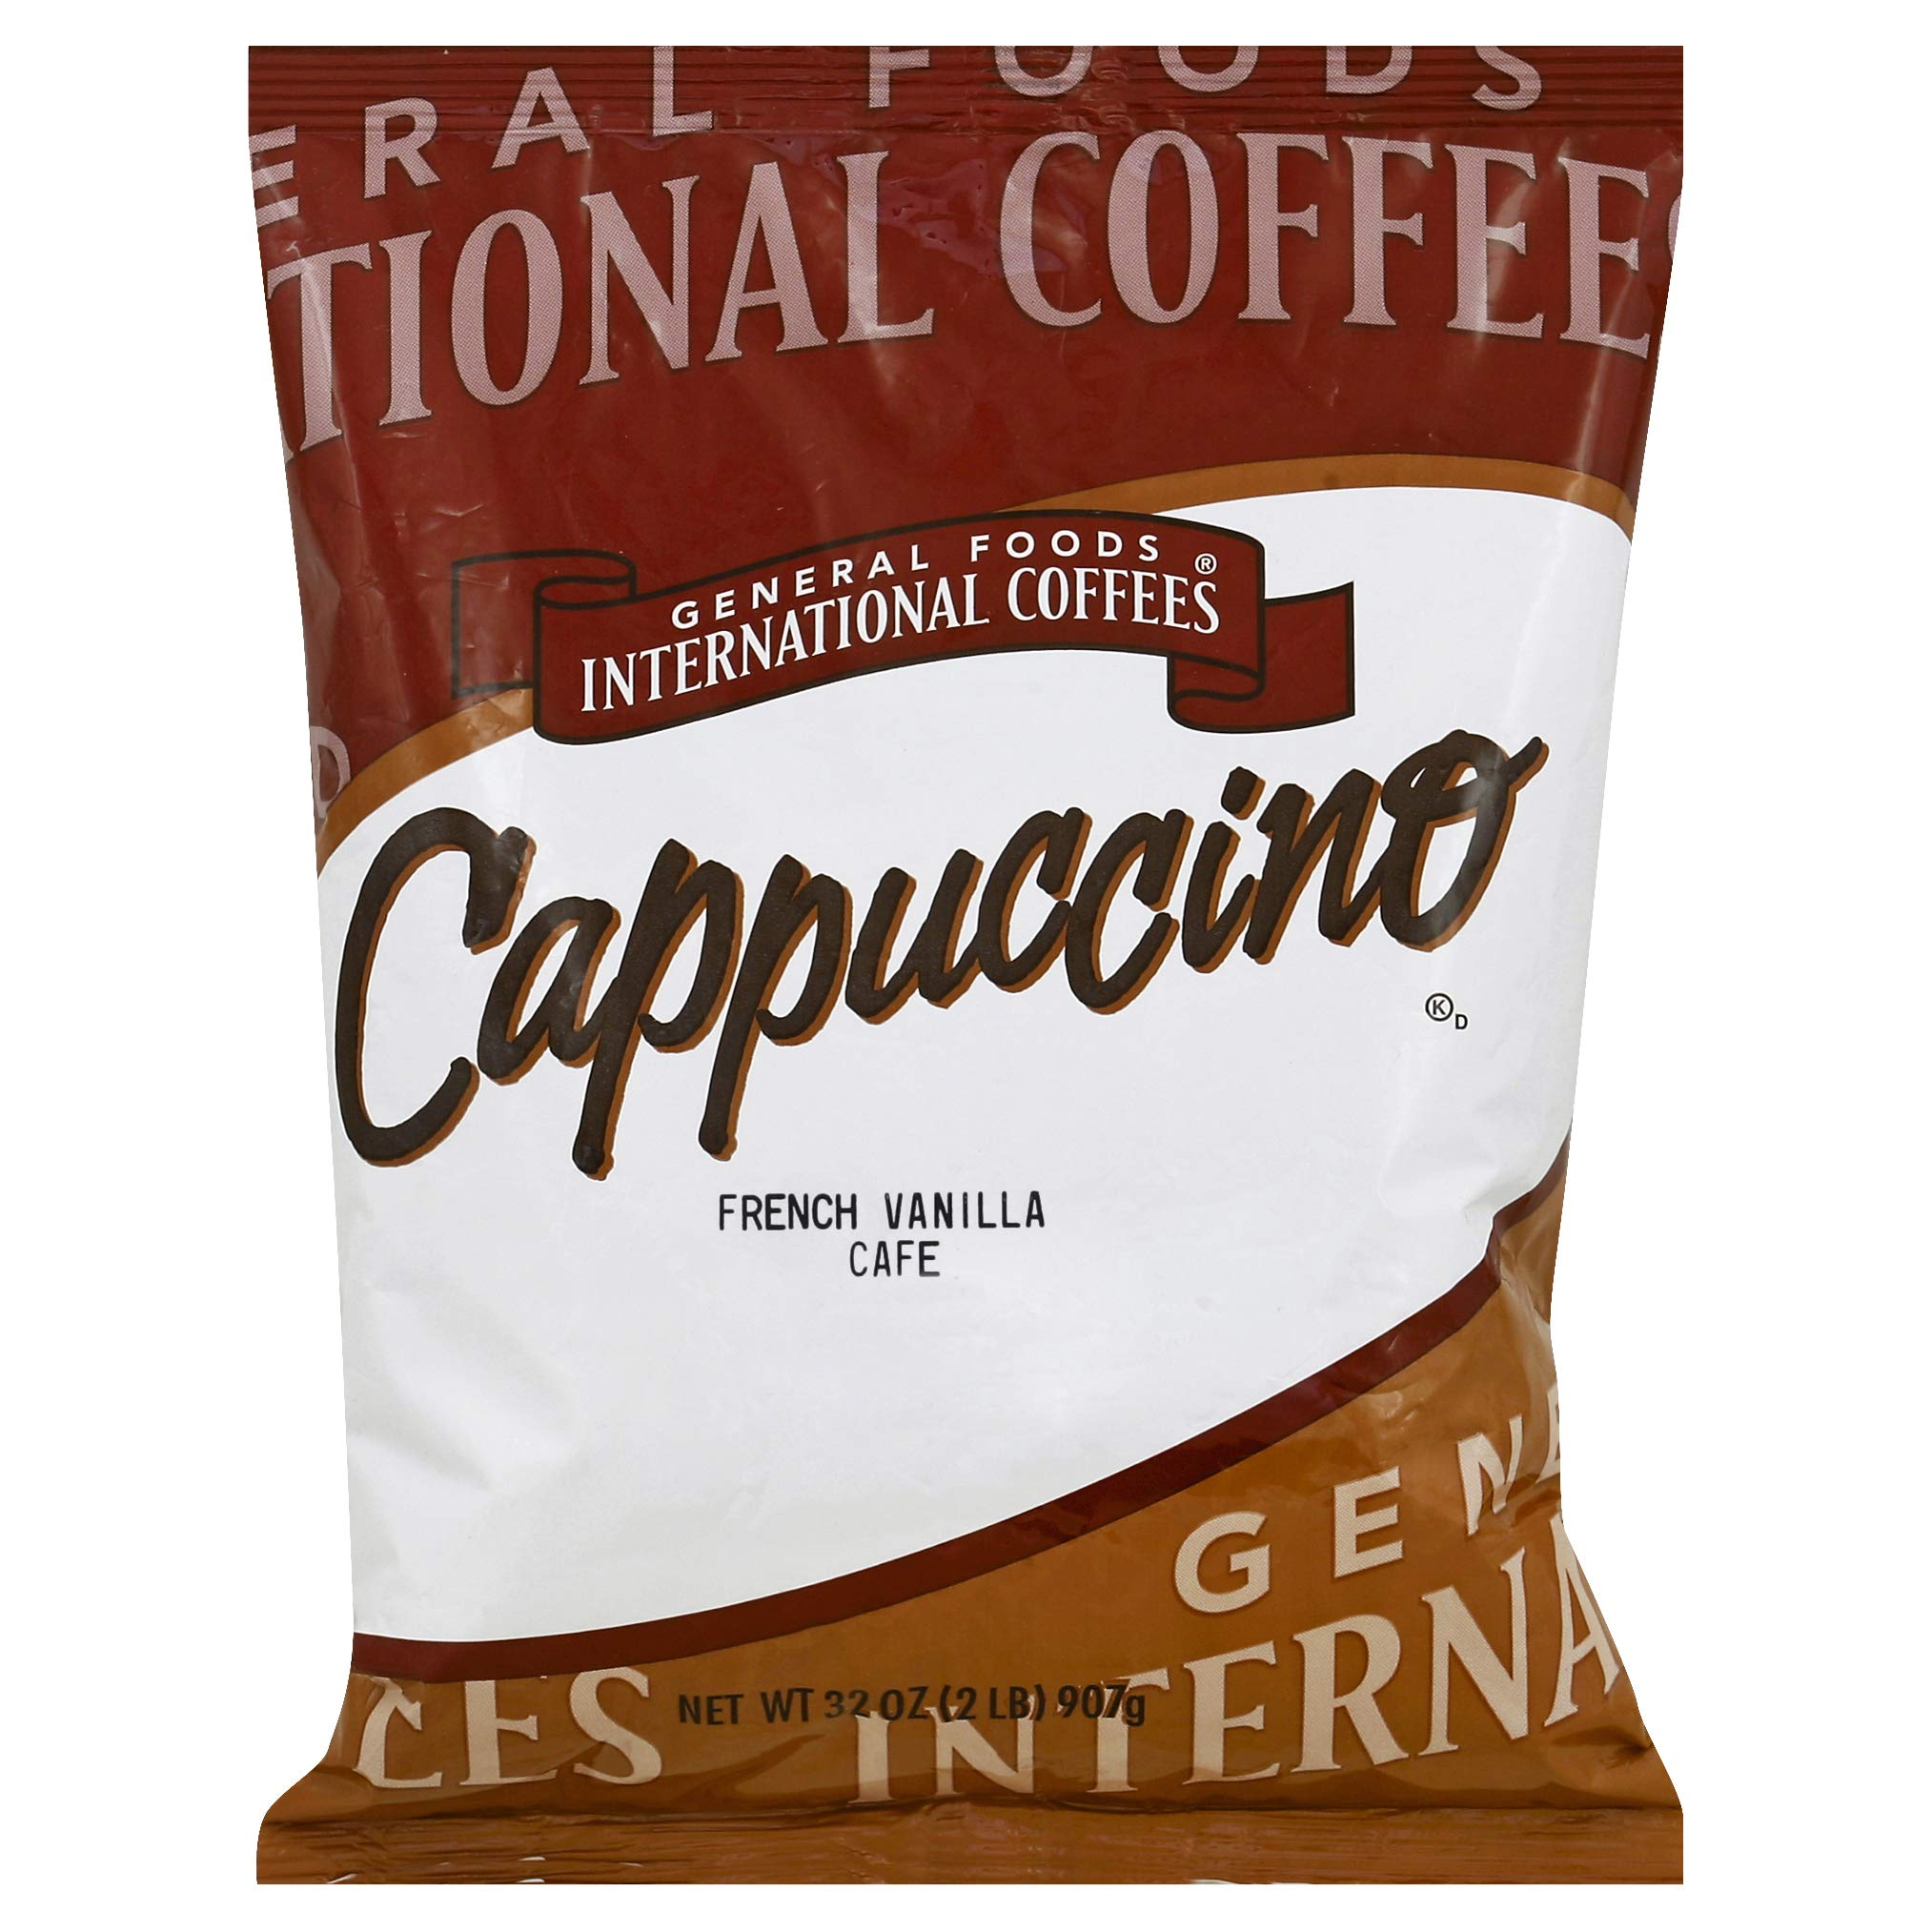 General Foods French Vanilla Cappuccino Bulk Coffee Mix (2 lbs Bags, Pack of 6) by General Foods International Coffee